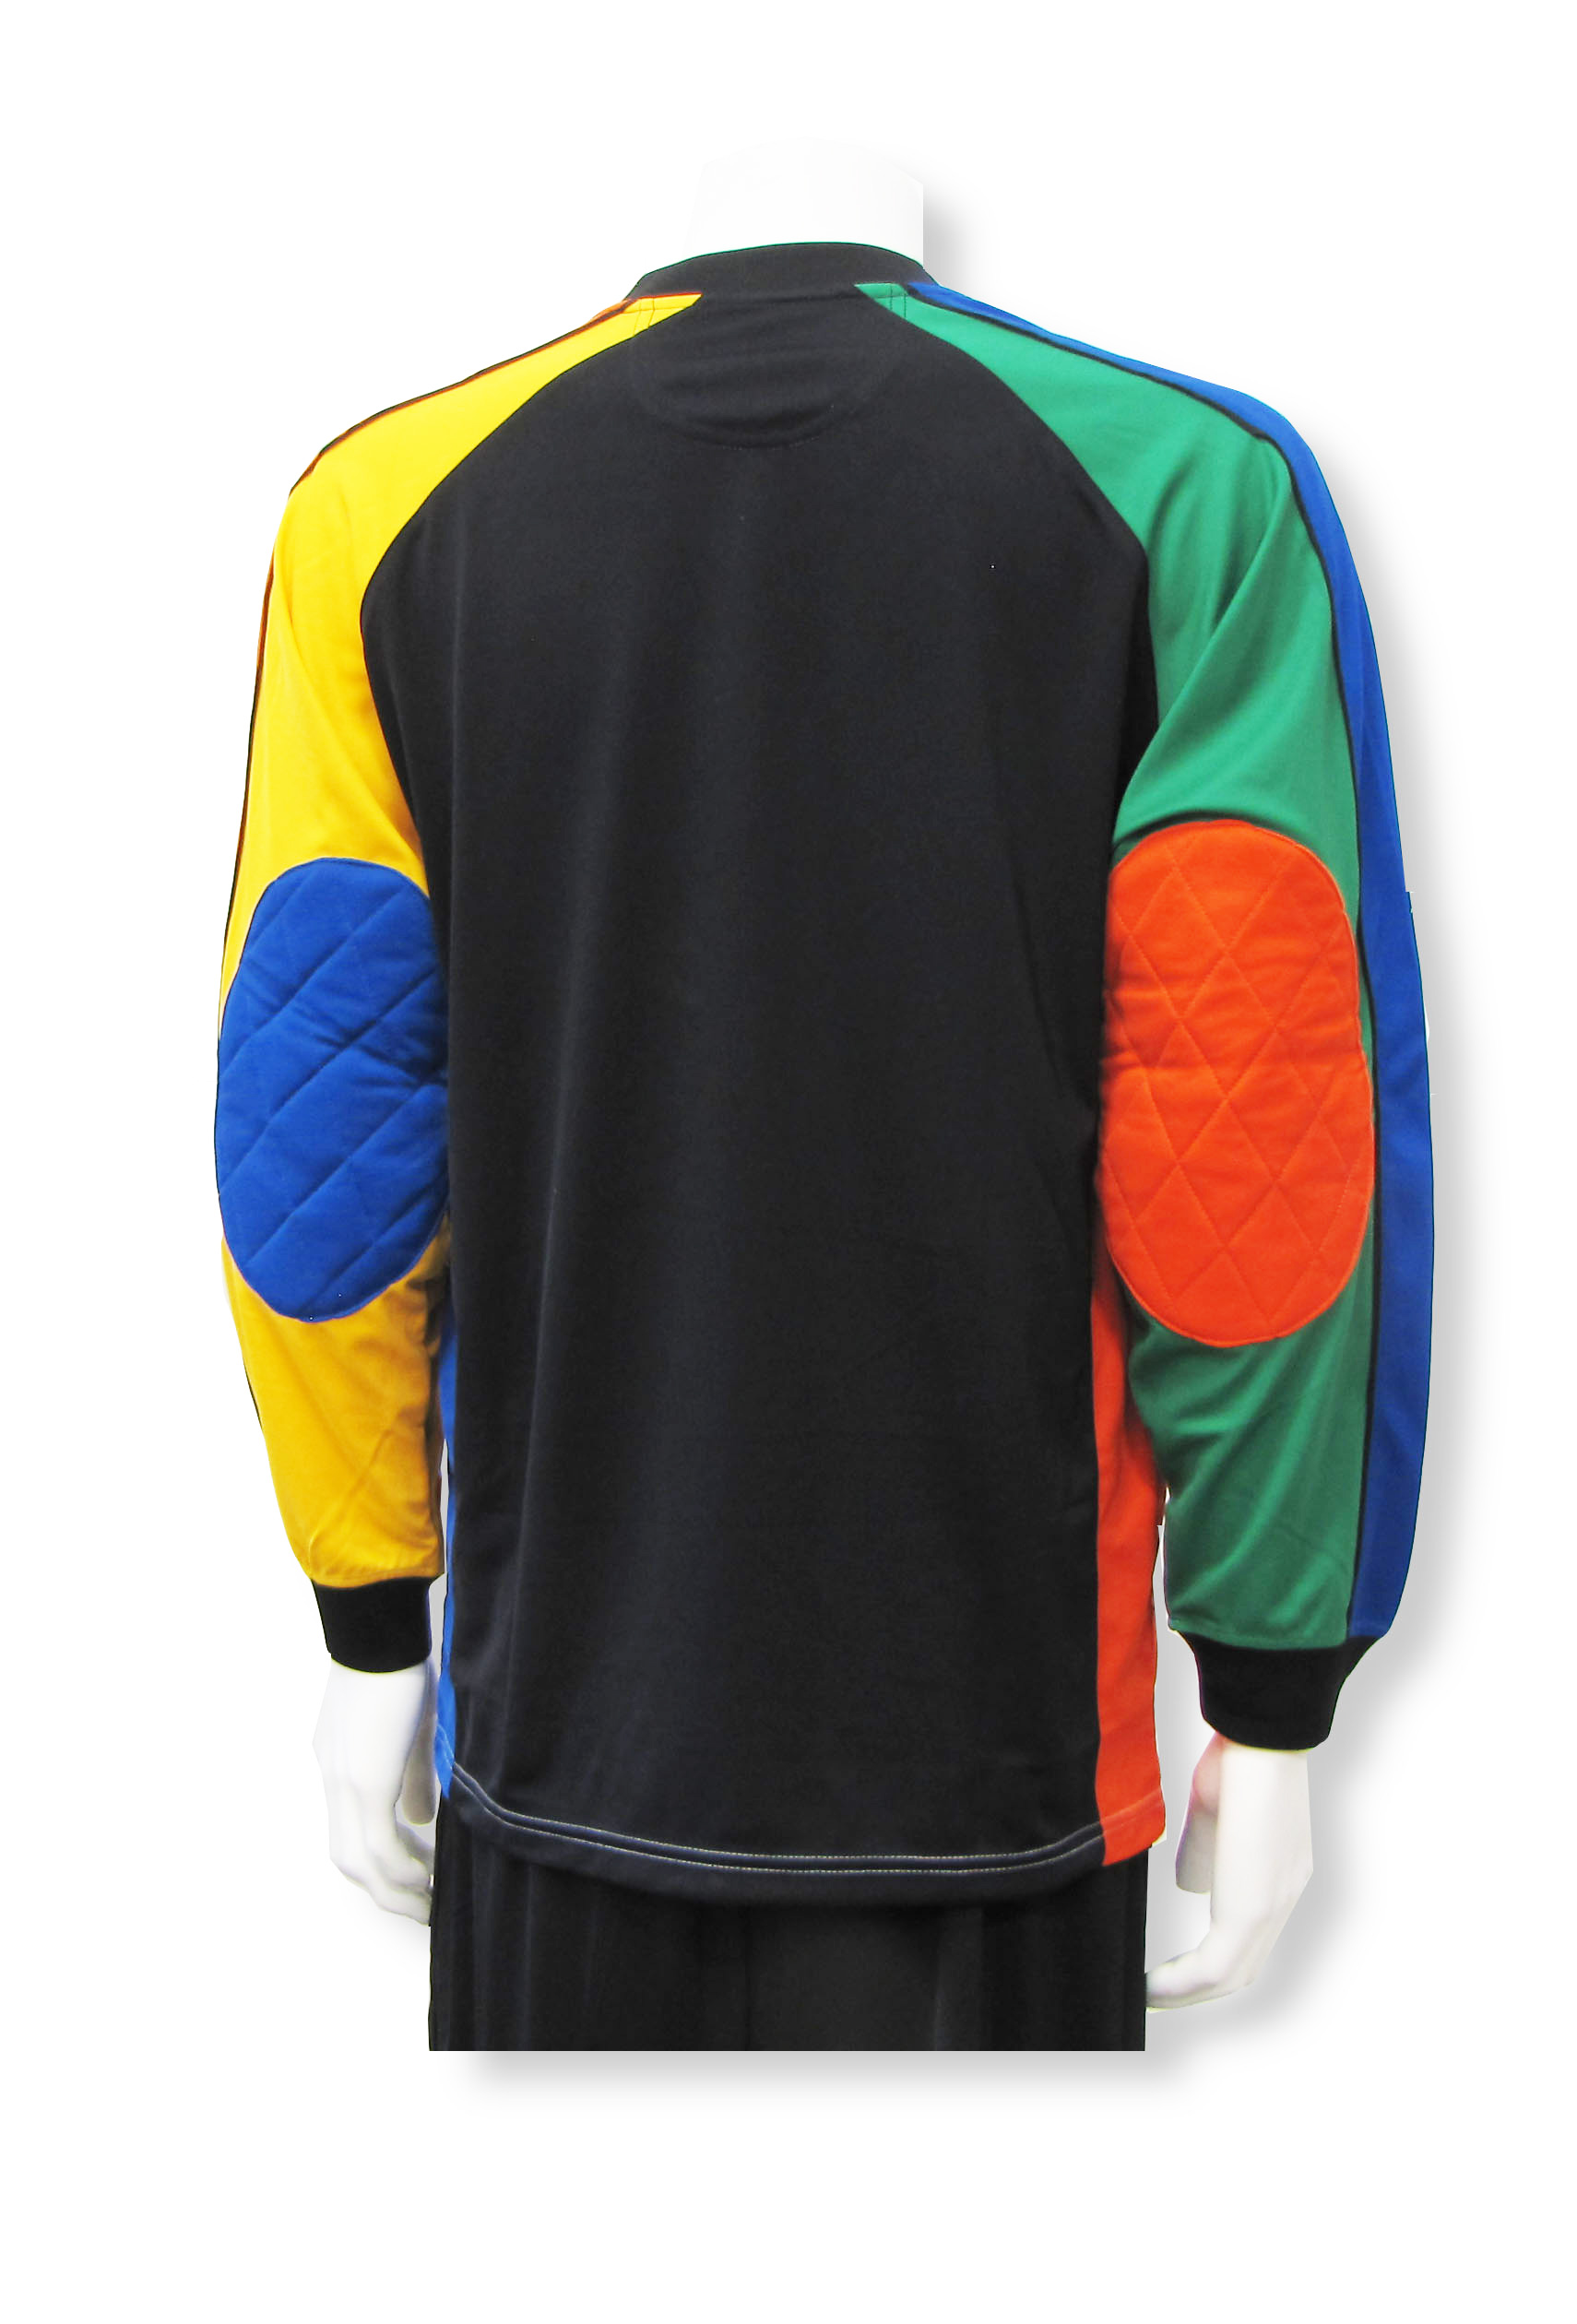 Gumball Wizard soccer keeper jersey back by Code Four Athletics